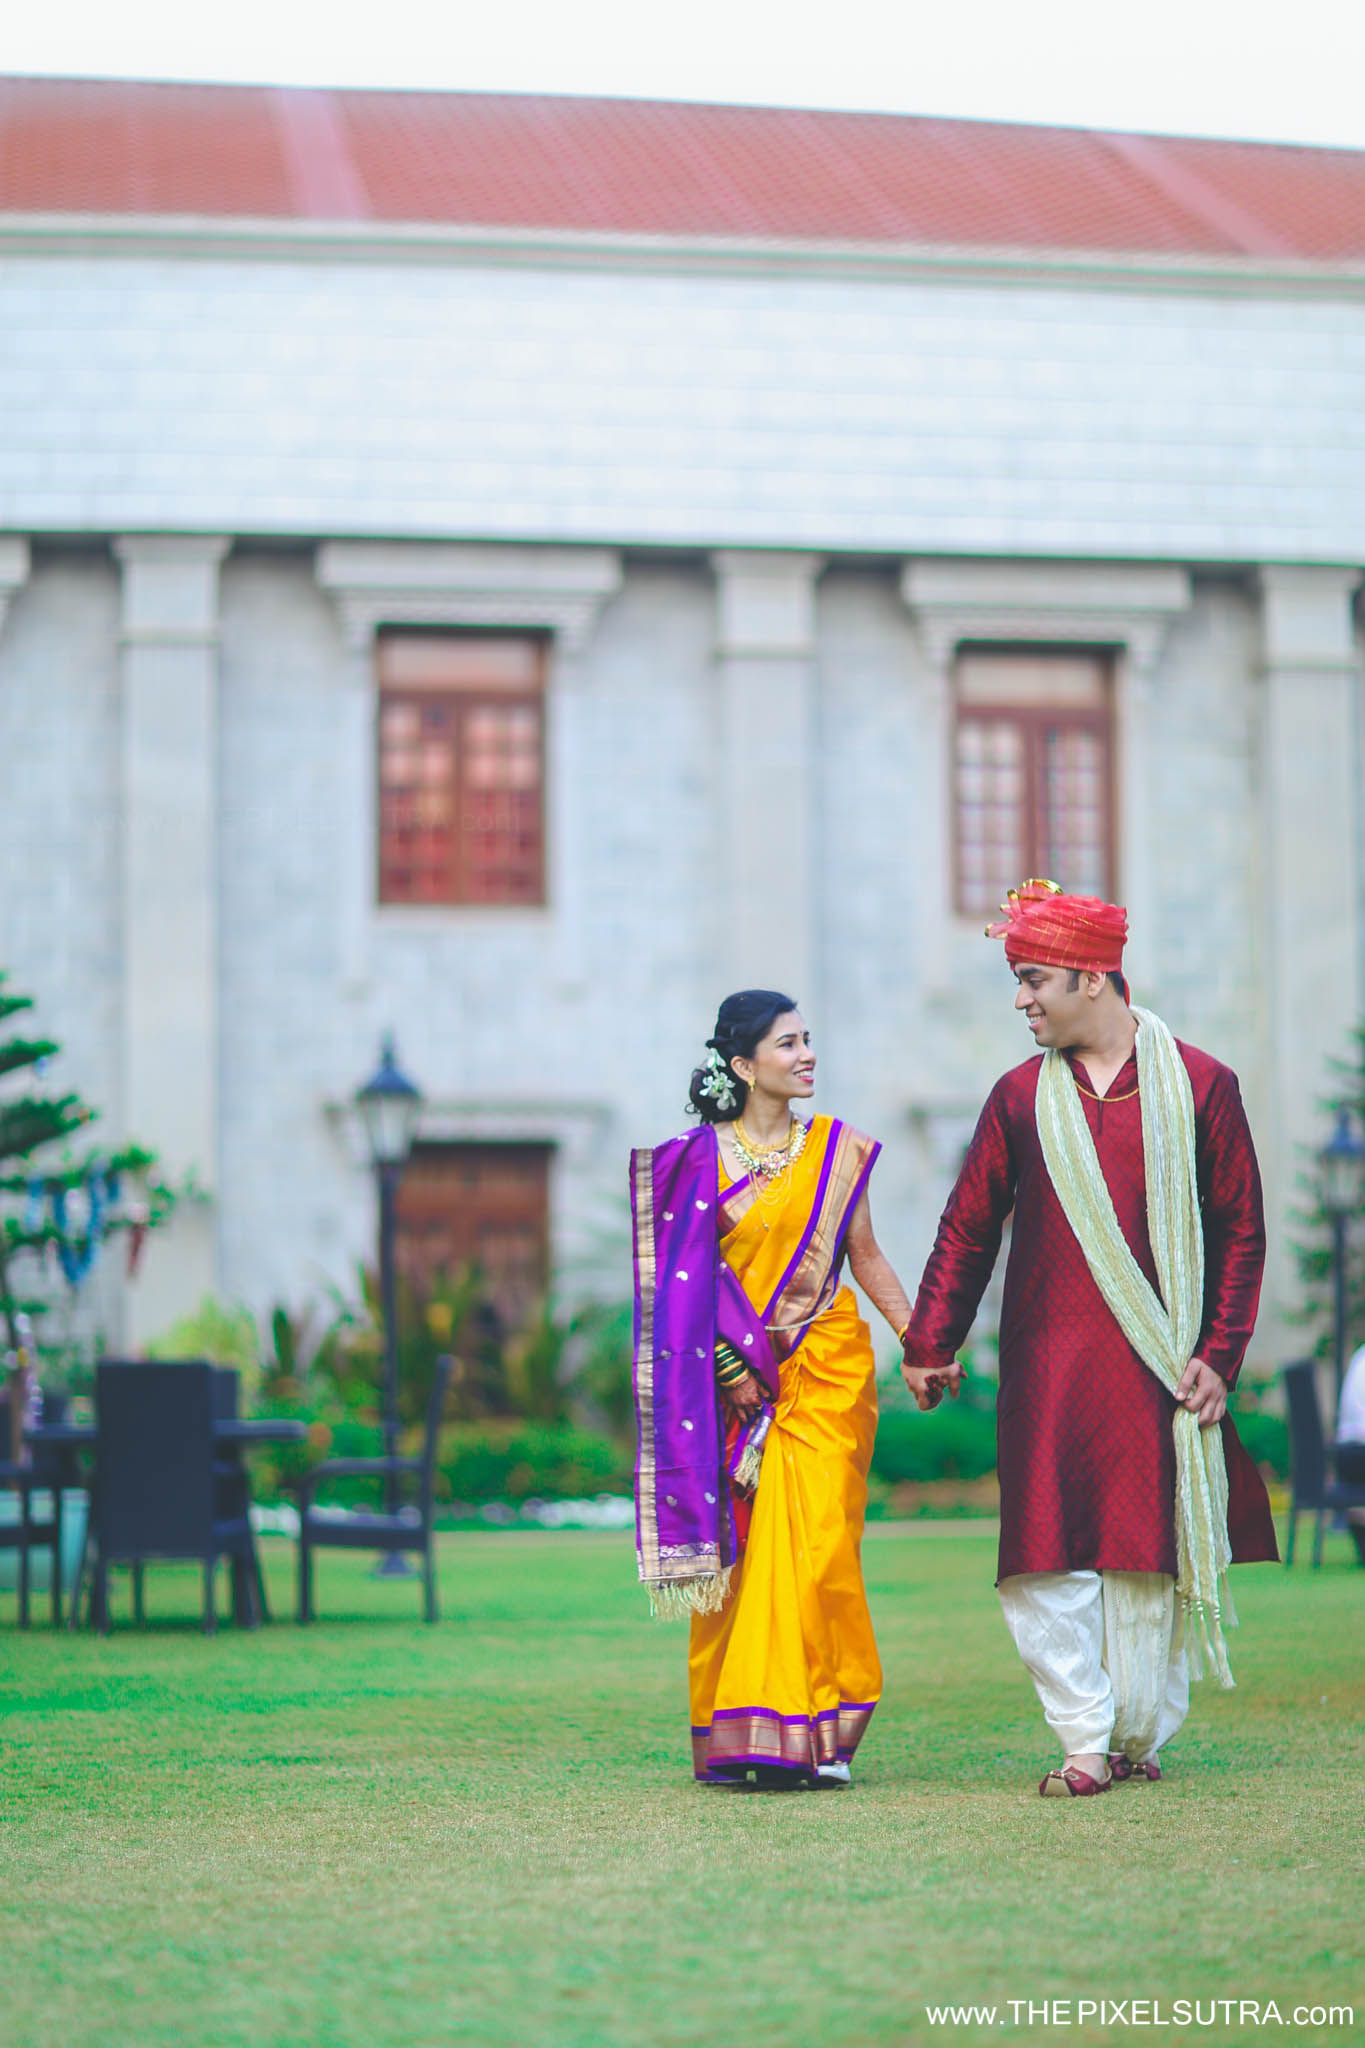 The Pixel Sutra Nachiket x Priyanka Candid Wedding photographer Mumbai Best  (55).jpg